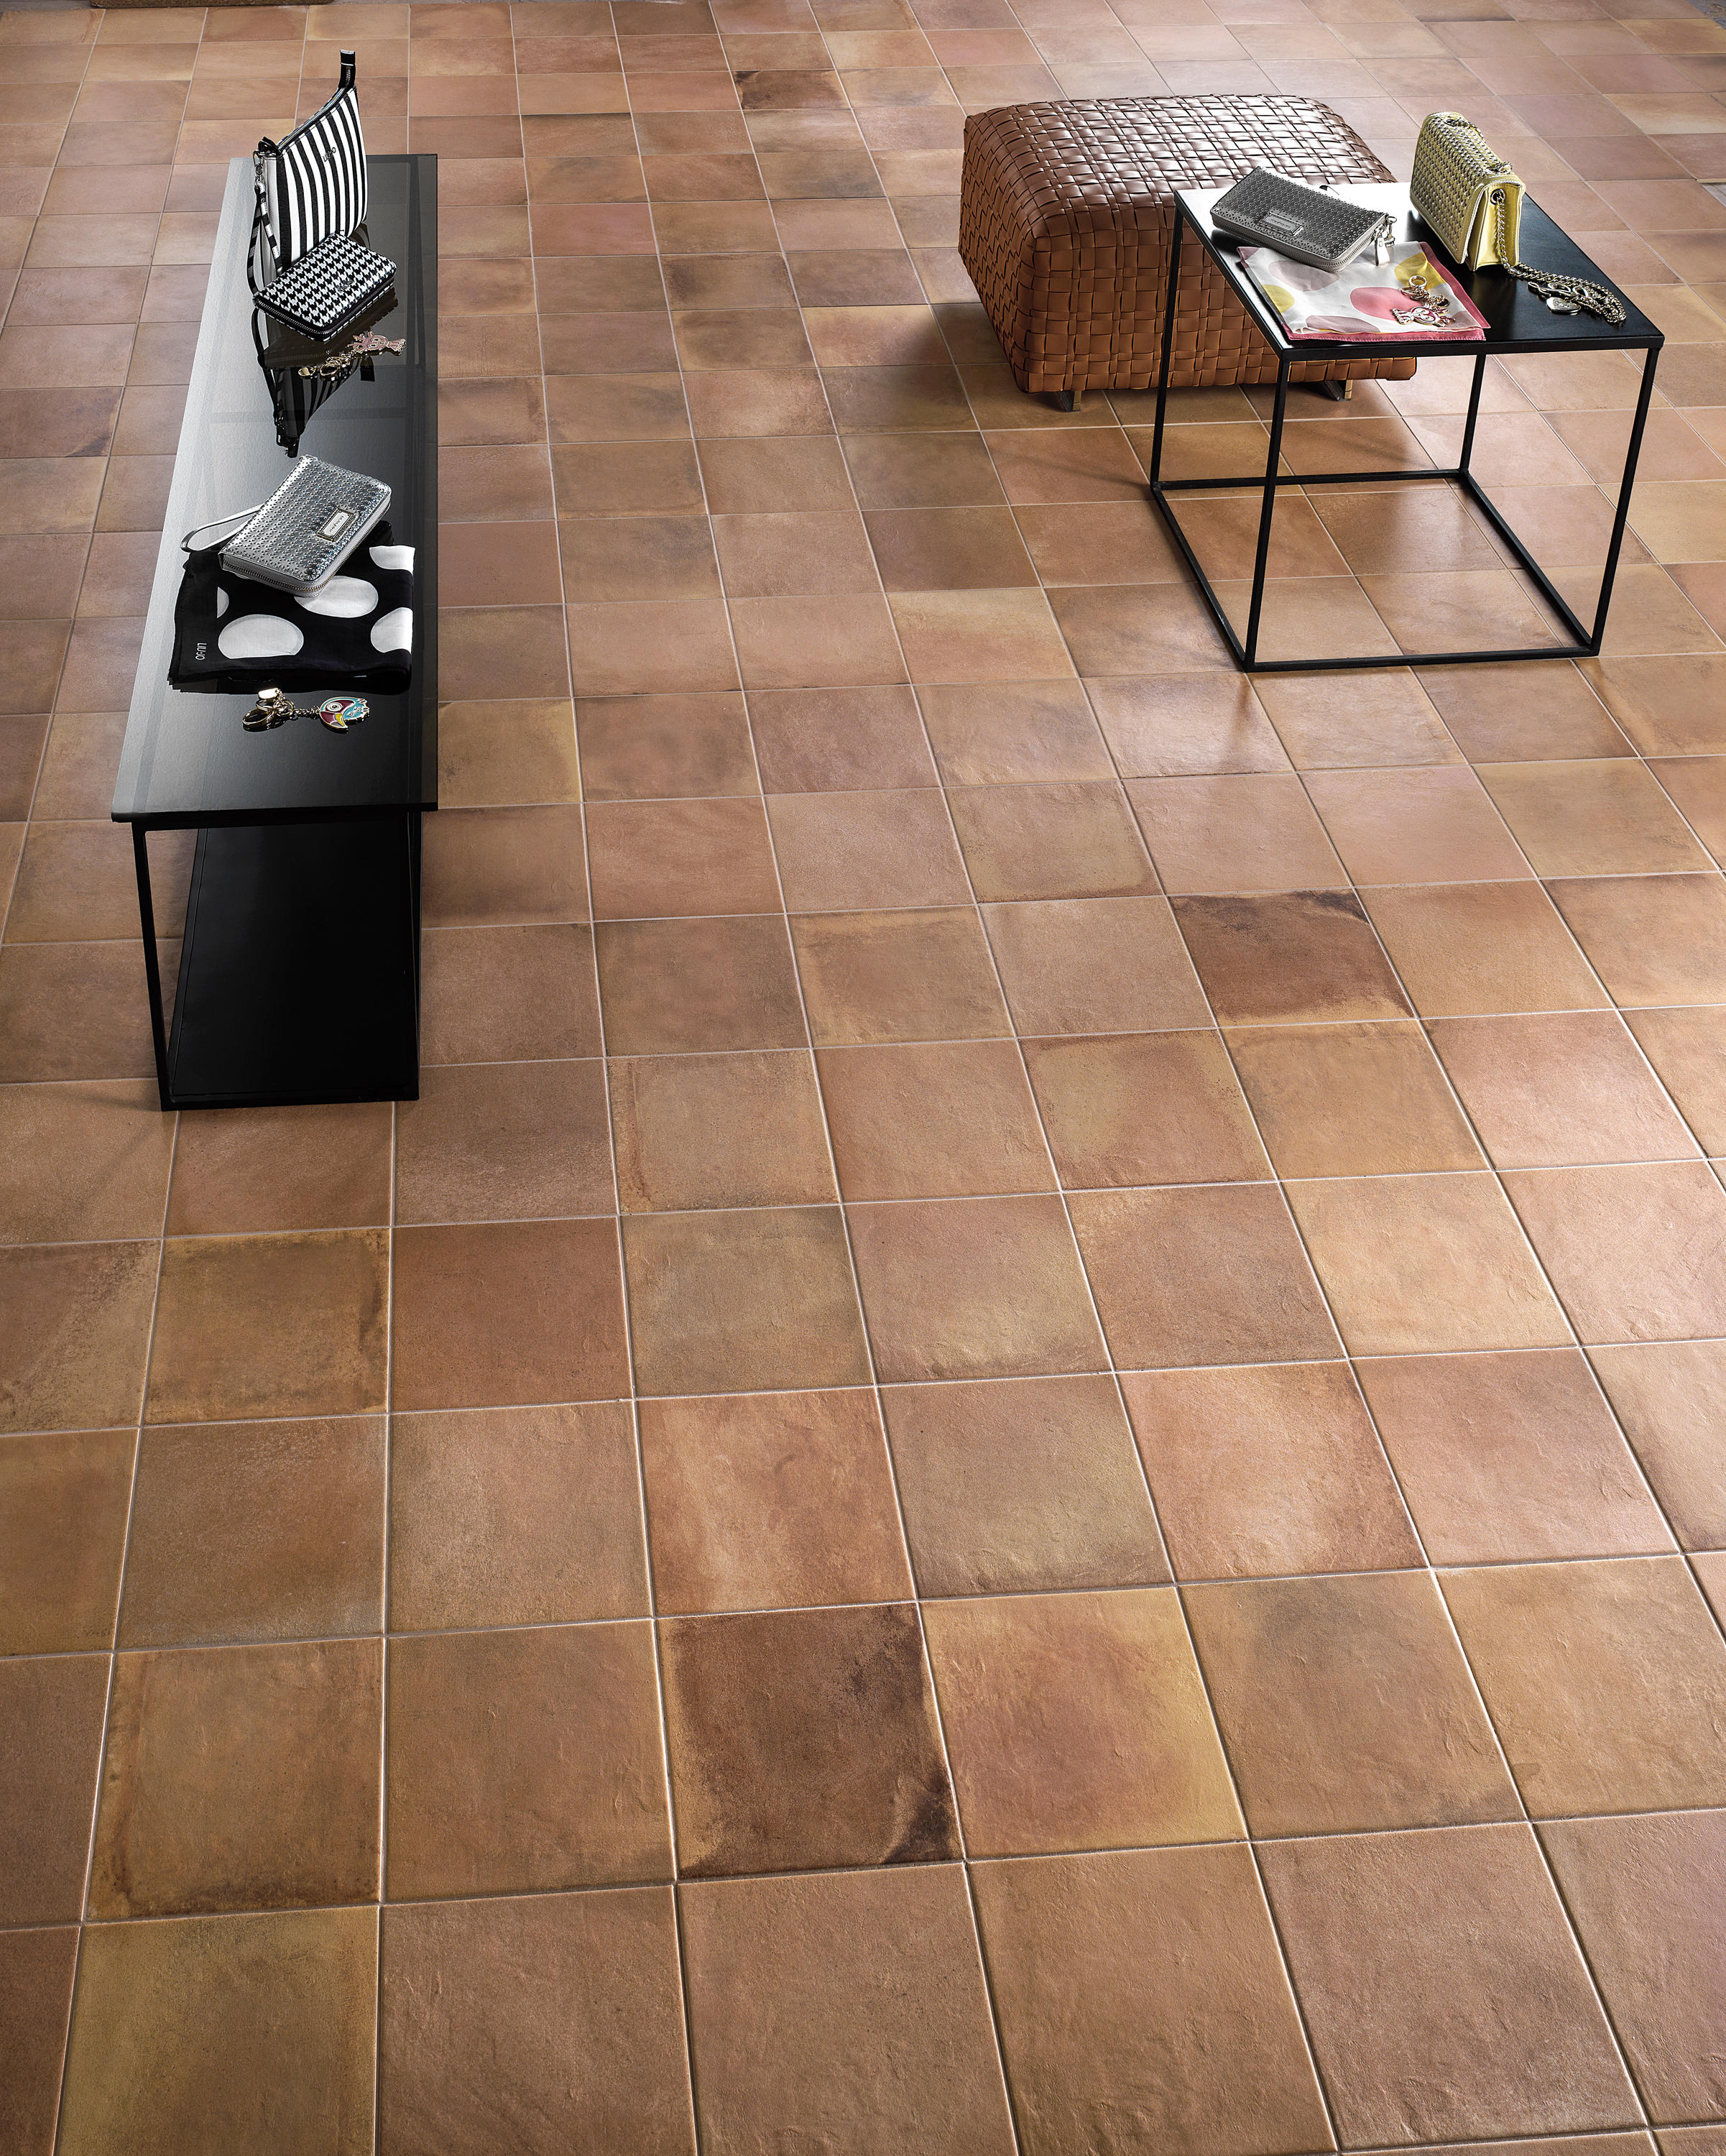 Firenze heritage antico matt floor tiles from fap ceramiche ambient images dailygadgetfo Gallery